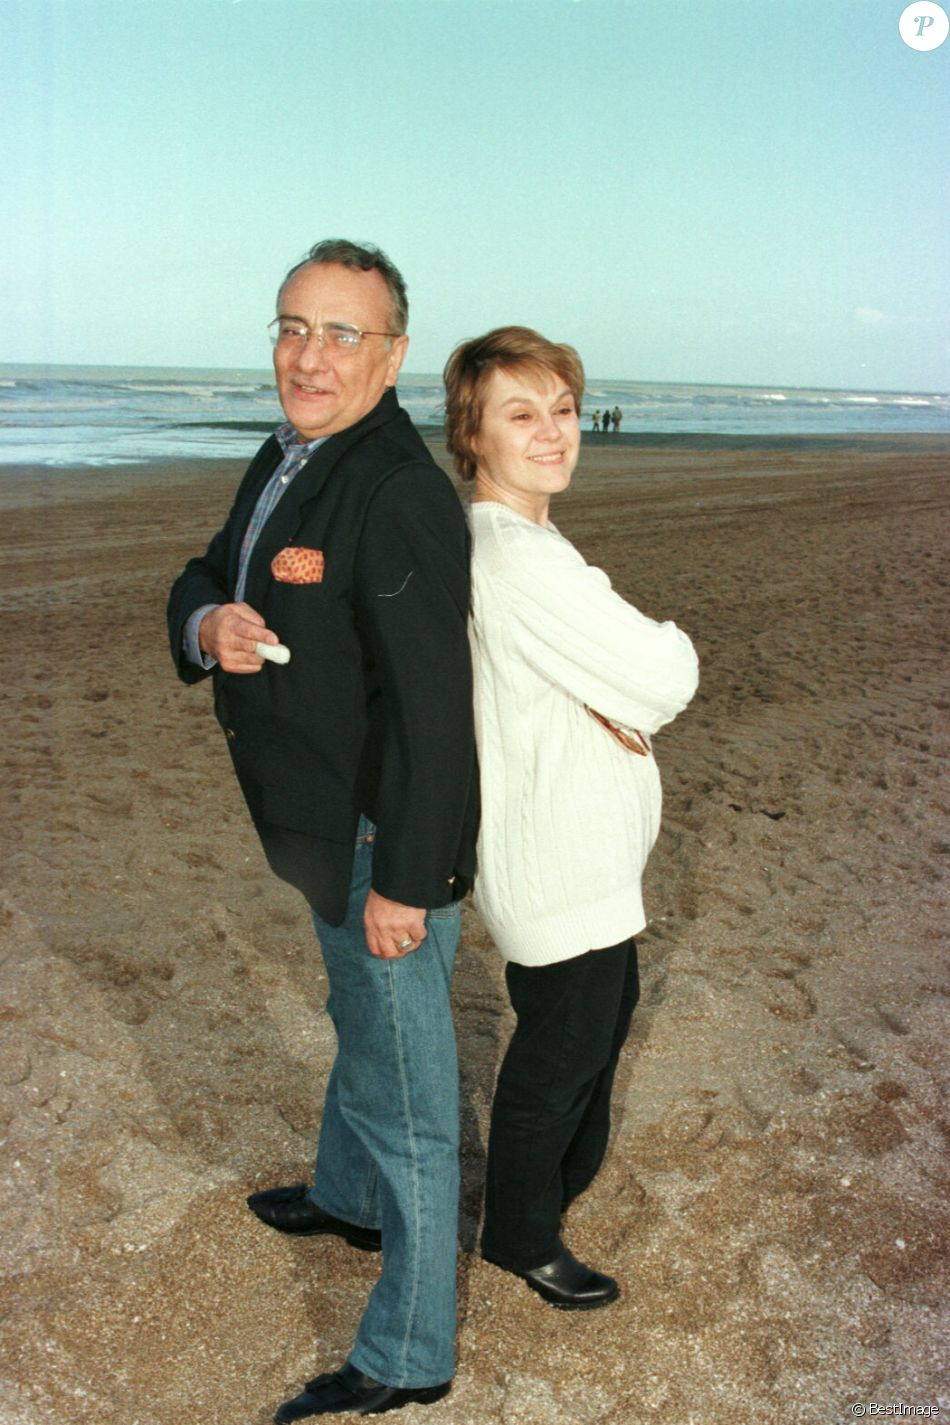 Yves Mourousi Et Marie Laure Augry : mourousi, marie, laure, augry, Mourousi, Marie-Laure, Augry, Cabourg,, Octobre, 1996., Purepeople